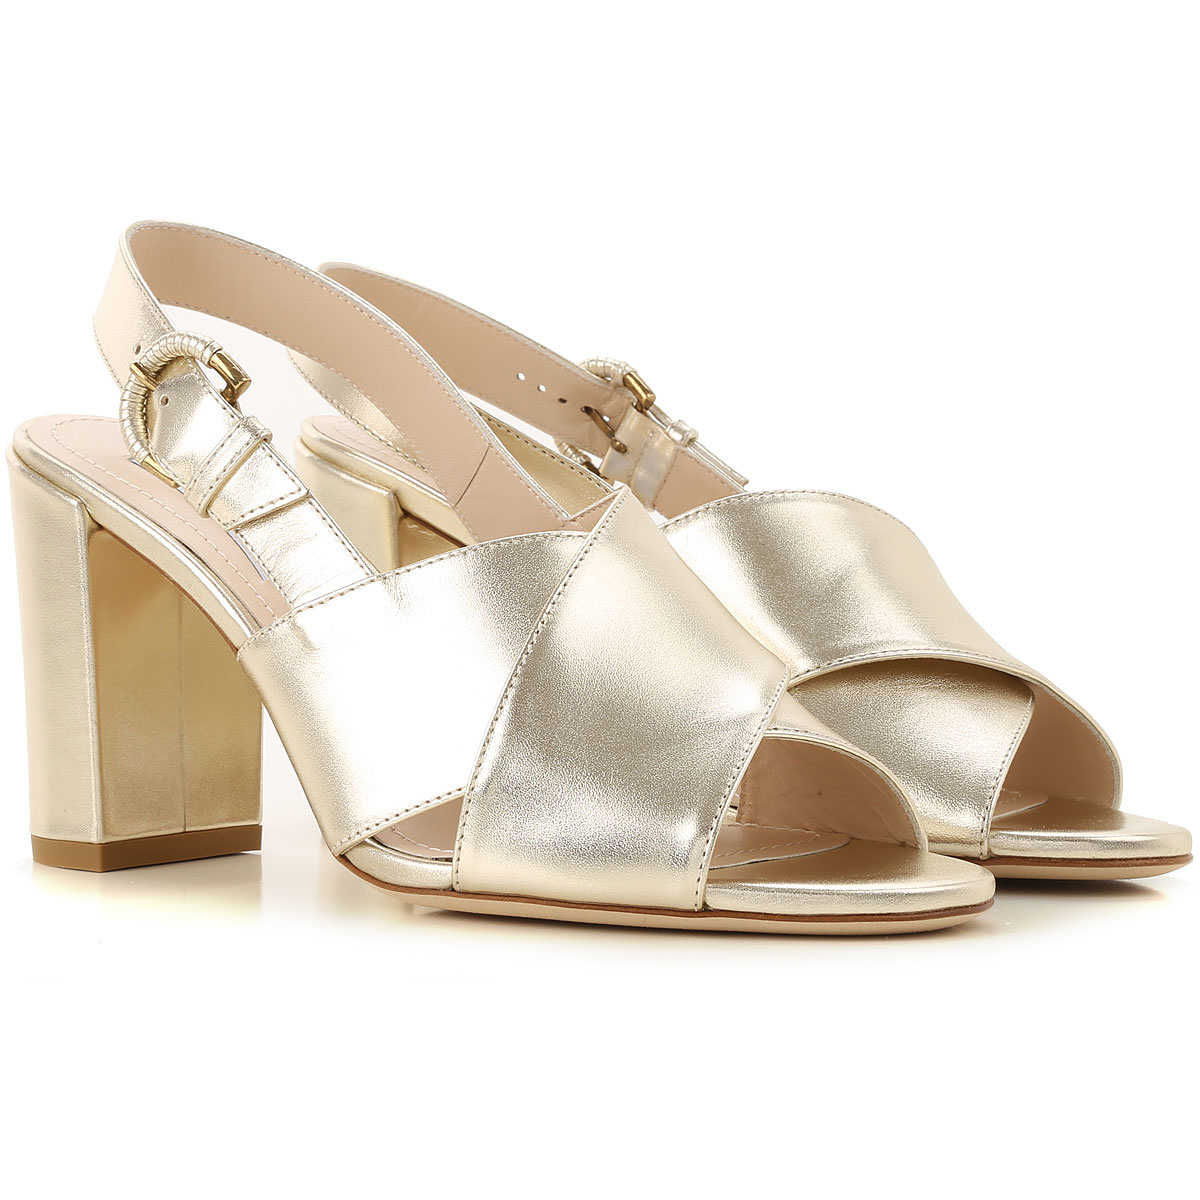 Tods Sandals for Women On Sale Gold DK - GOOFASH - Womens SANDALS